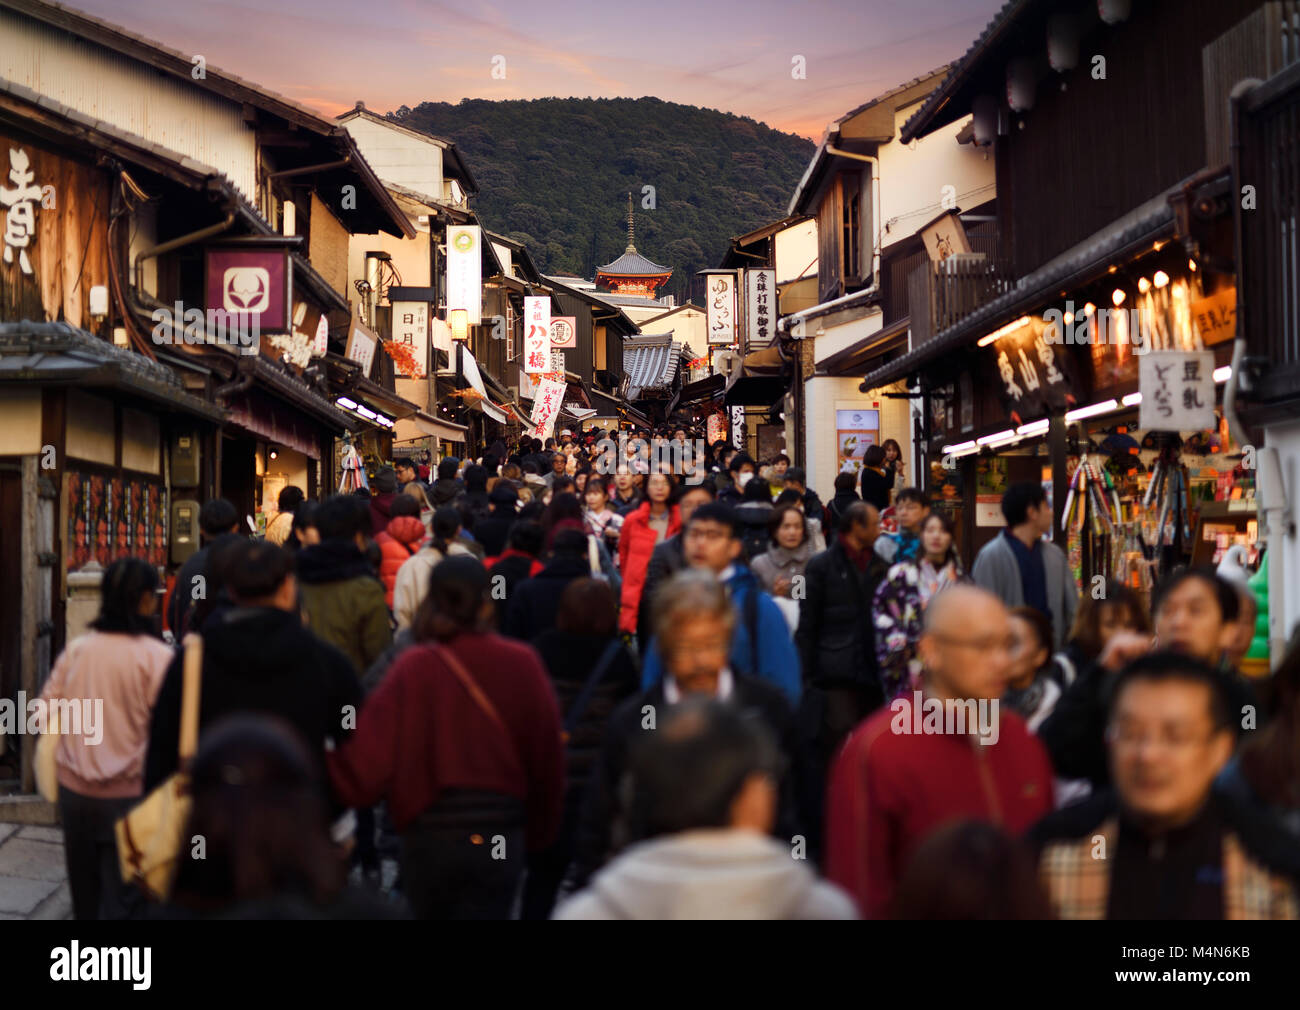 Matsubara dori street at sunset in fall busy with tourists near Kiyomizu-dera temple. Higashiyama, Kyoto, Japan Stock Photo